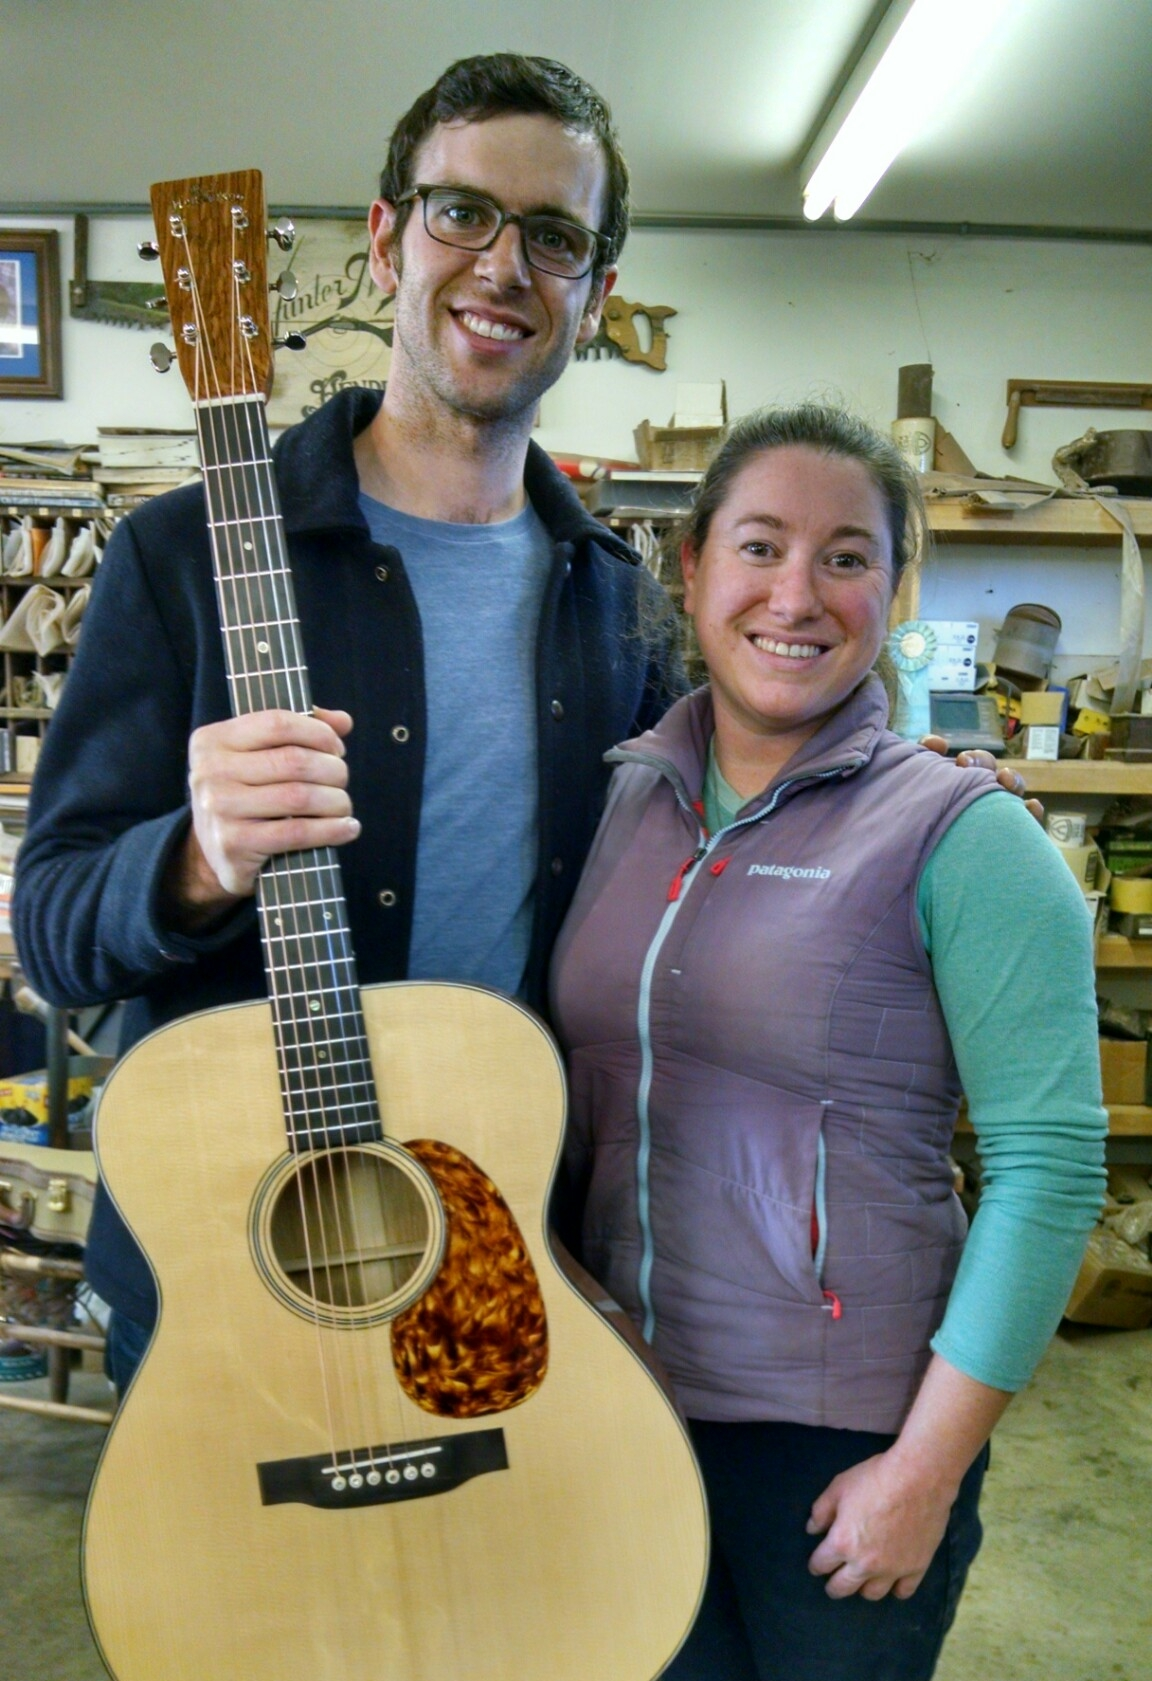 Bennett Sullivan stopped by the shop to borrow my oak #7 to play in Steve Martin's broadway musical Bright Star